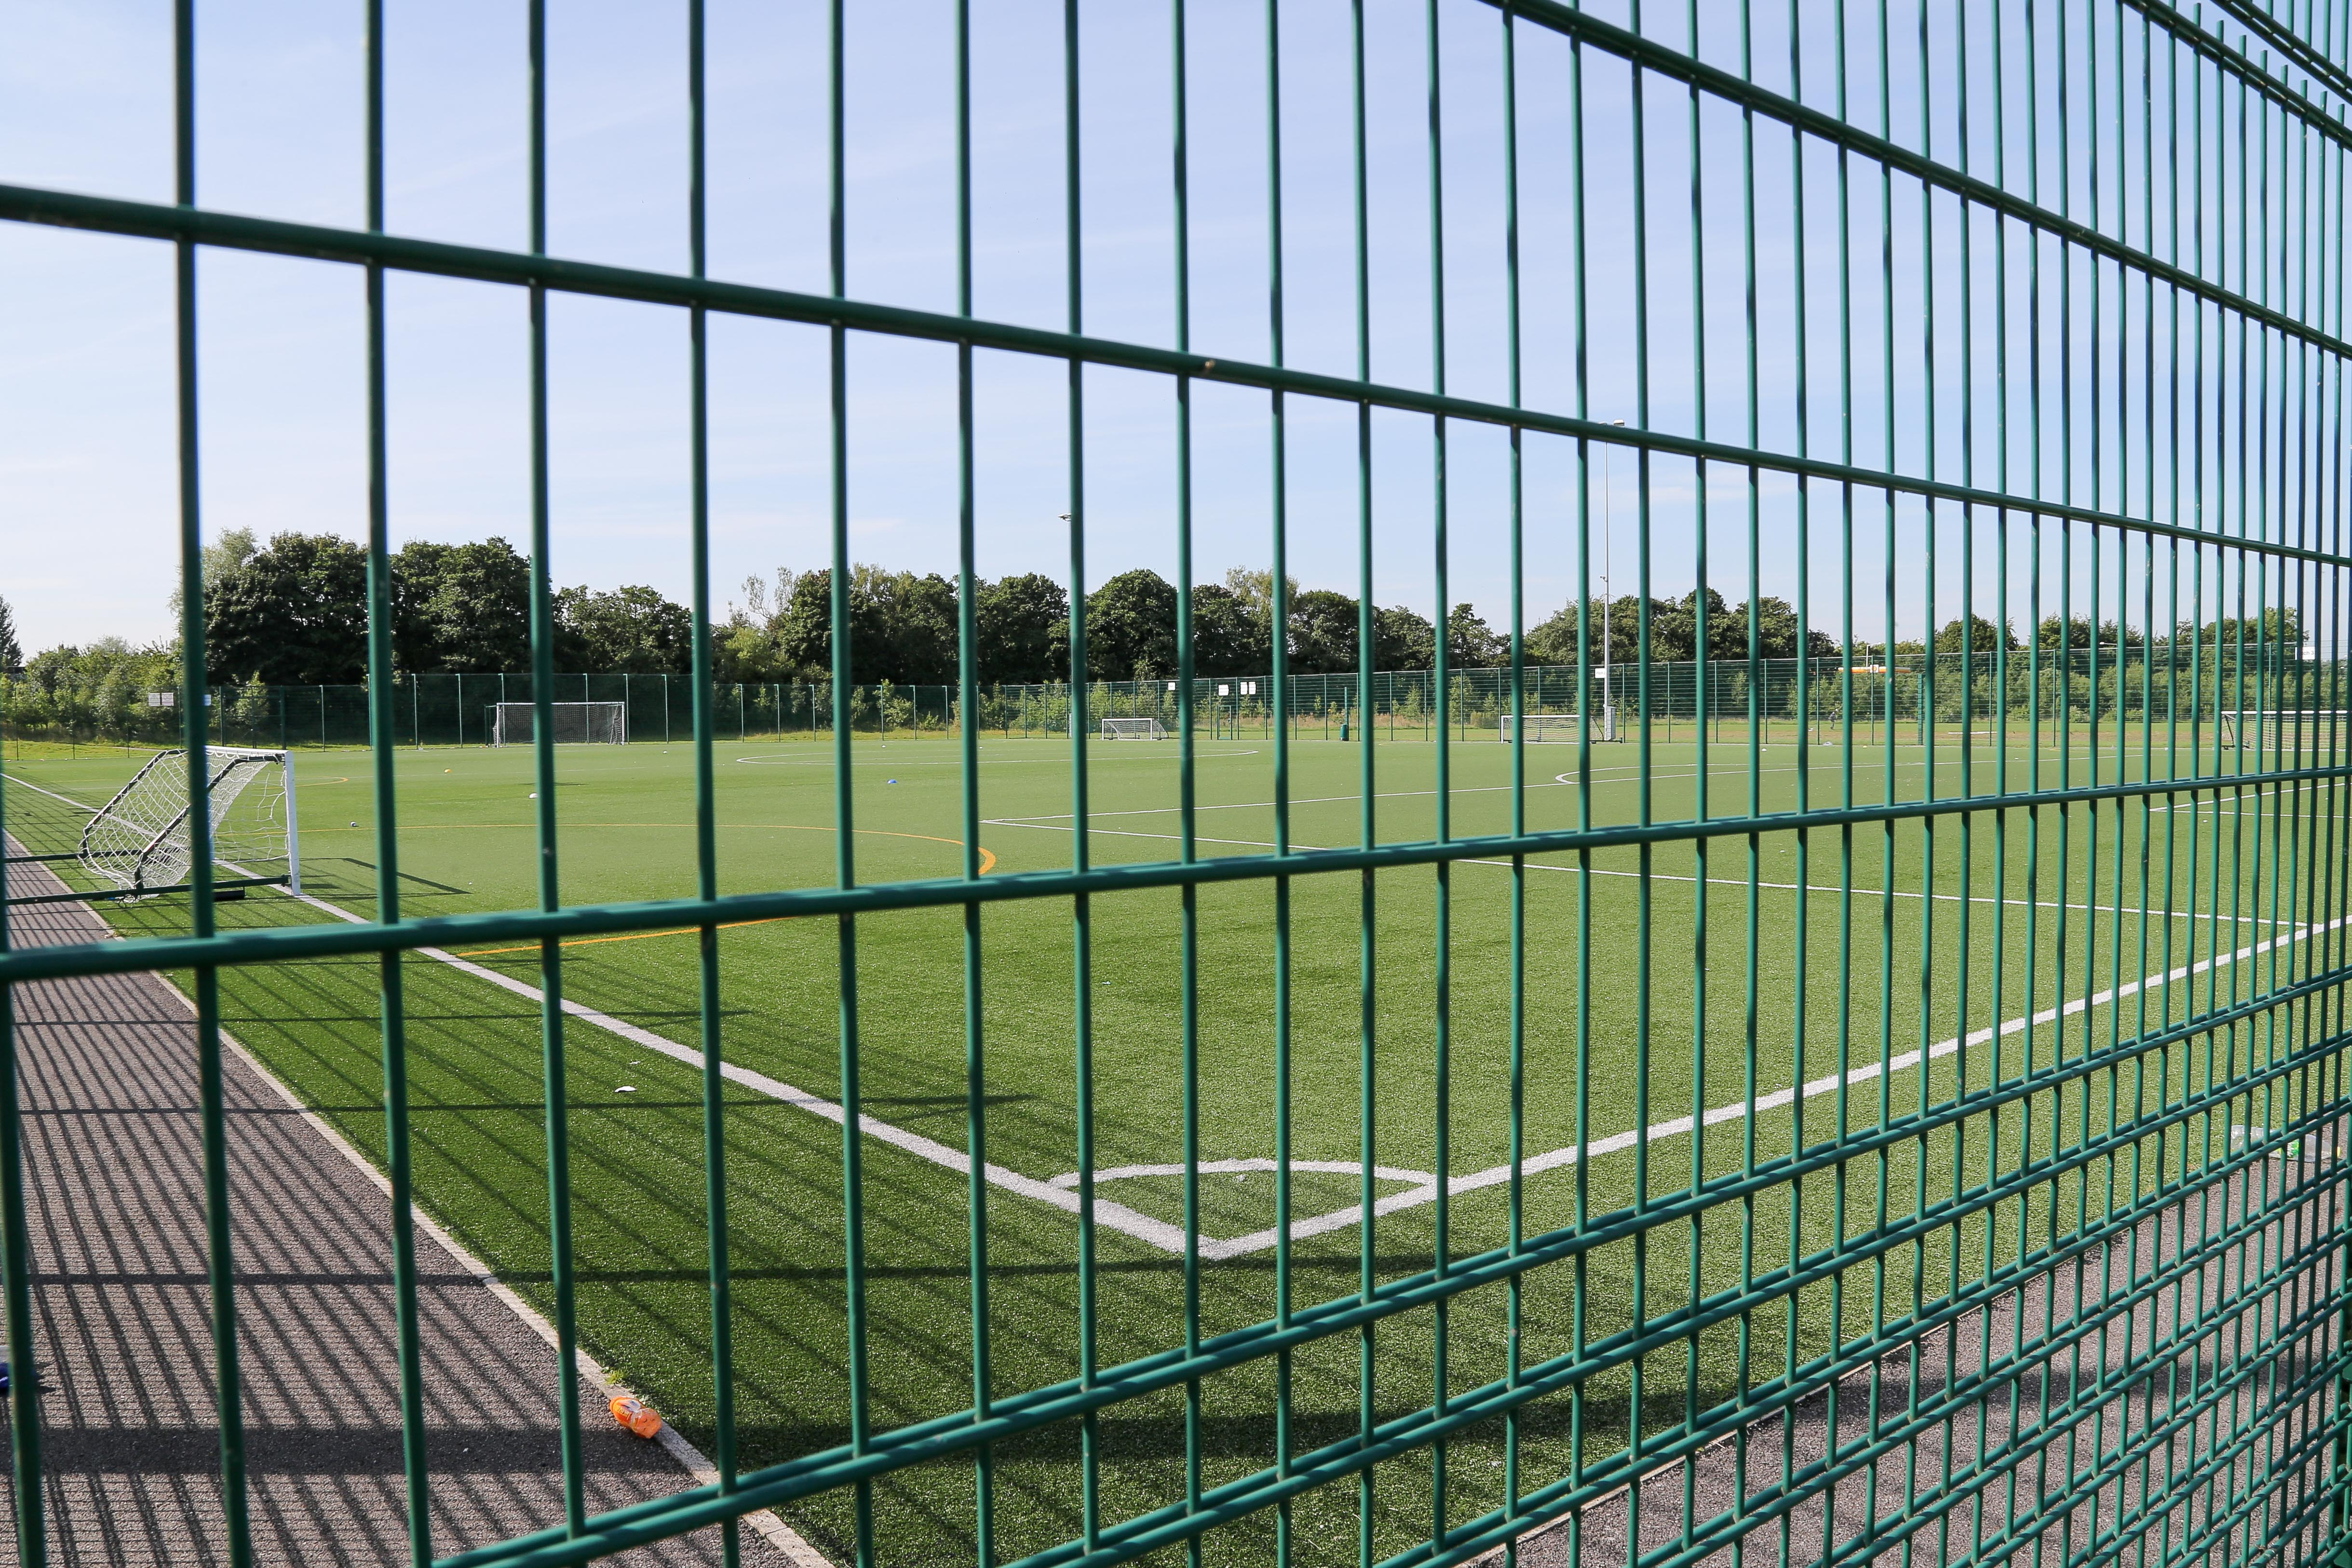 County bosses tight-lipped over fate of Glenburn pitch